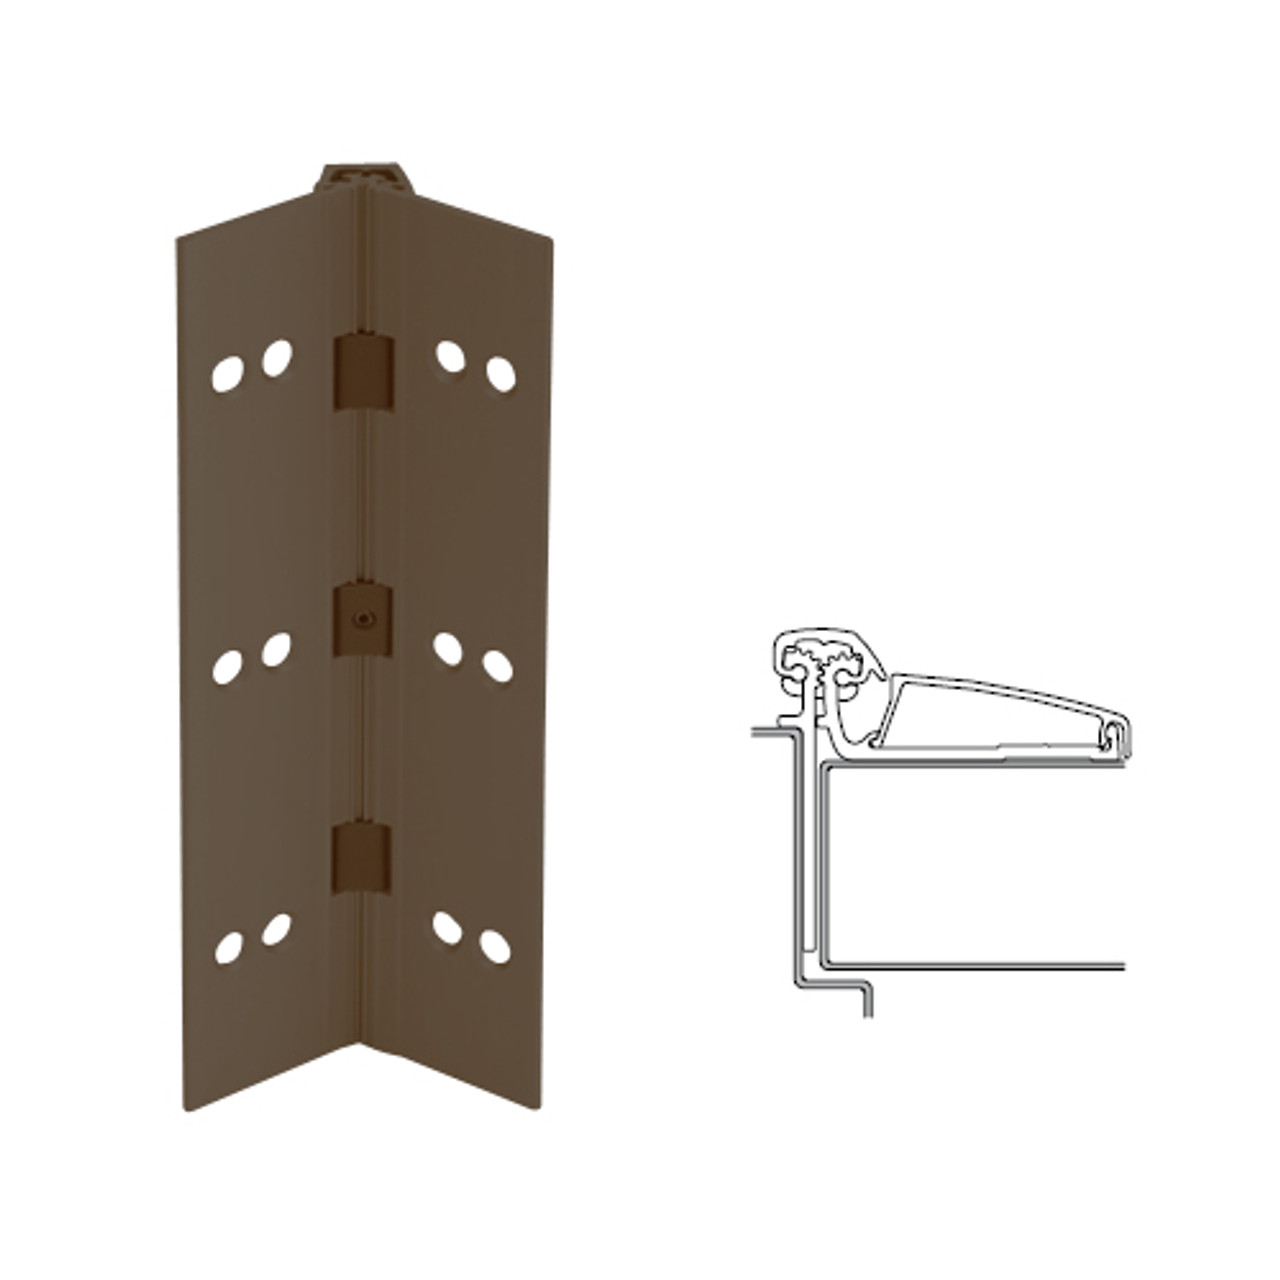 046XY-313AN-120-WD IVES Adjustable Half Surface Continuous Geared Hinges with Wood Screws in Dark Bronze Anodized